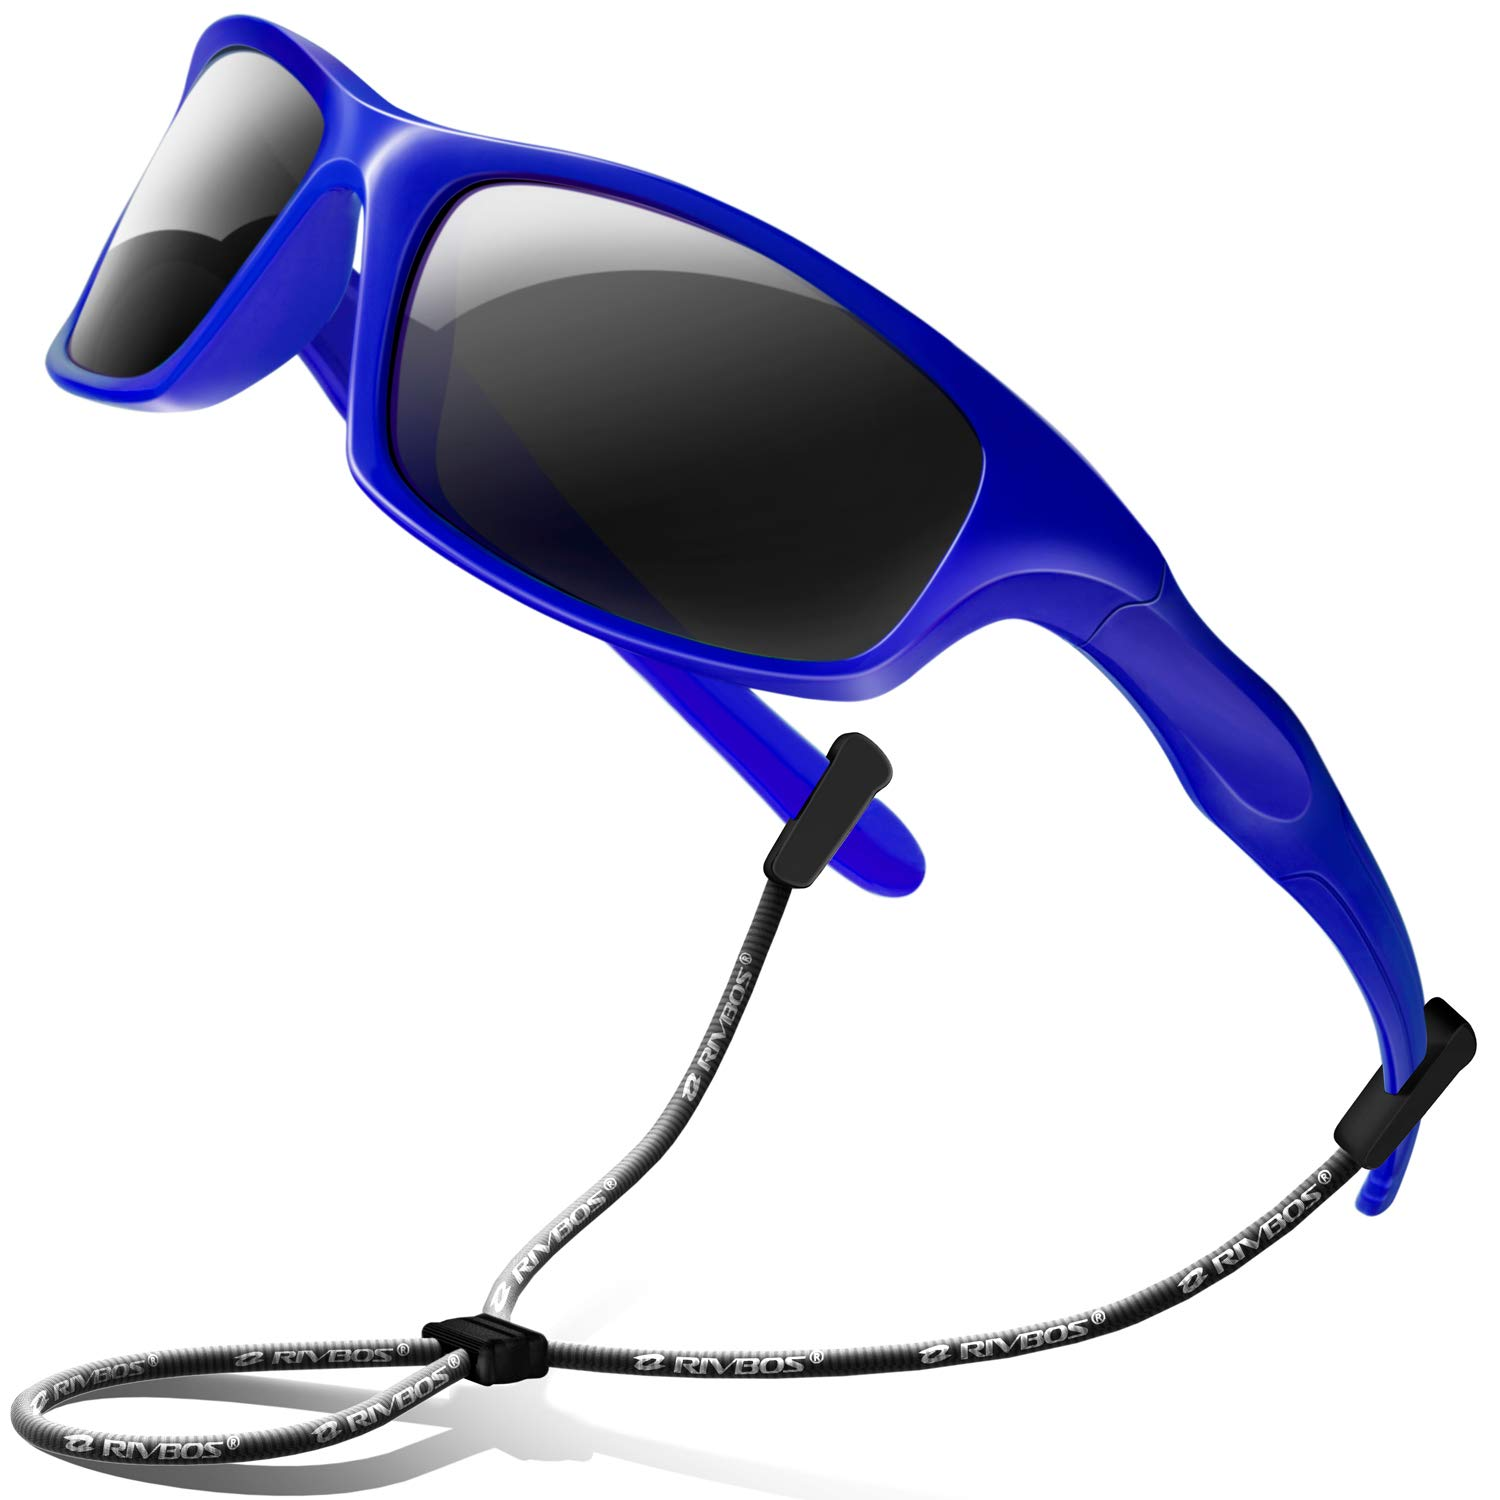 6a653fe1b Amazon.com: RIVBOS Rubber Kids Polarized Sunglasses With Strap Glasses  Shades for Boys Girls Baby and Children Age 3-10 RBK003 (003-2 Blue):  Clothing